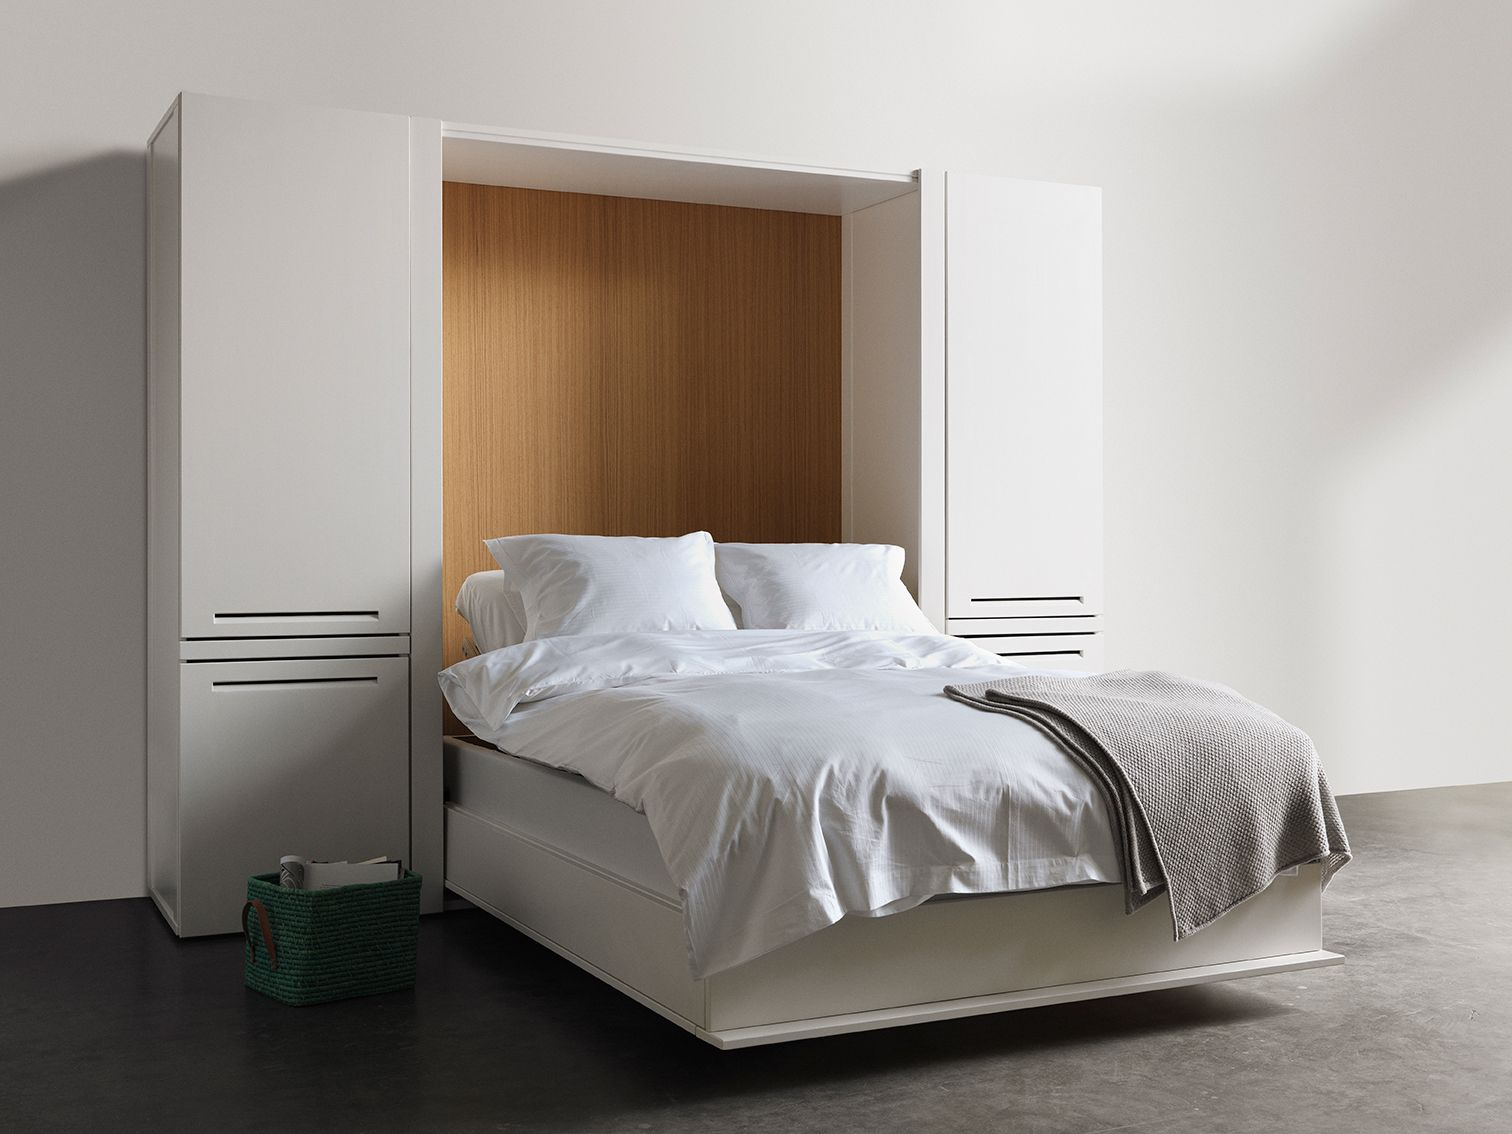 this bed cabinet is designed by swedish asante arkitekter and we